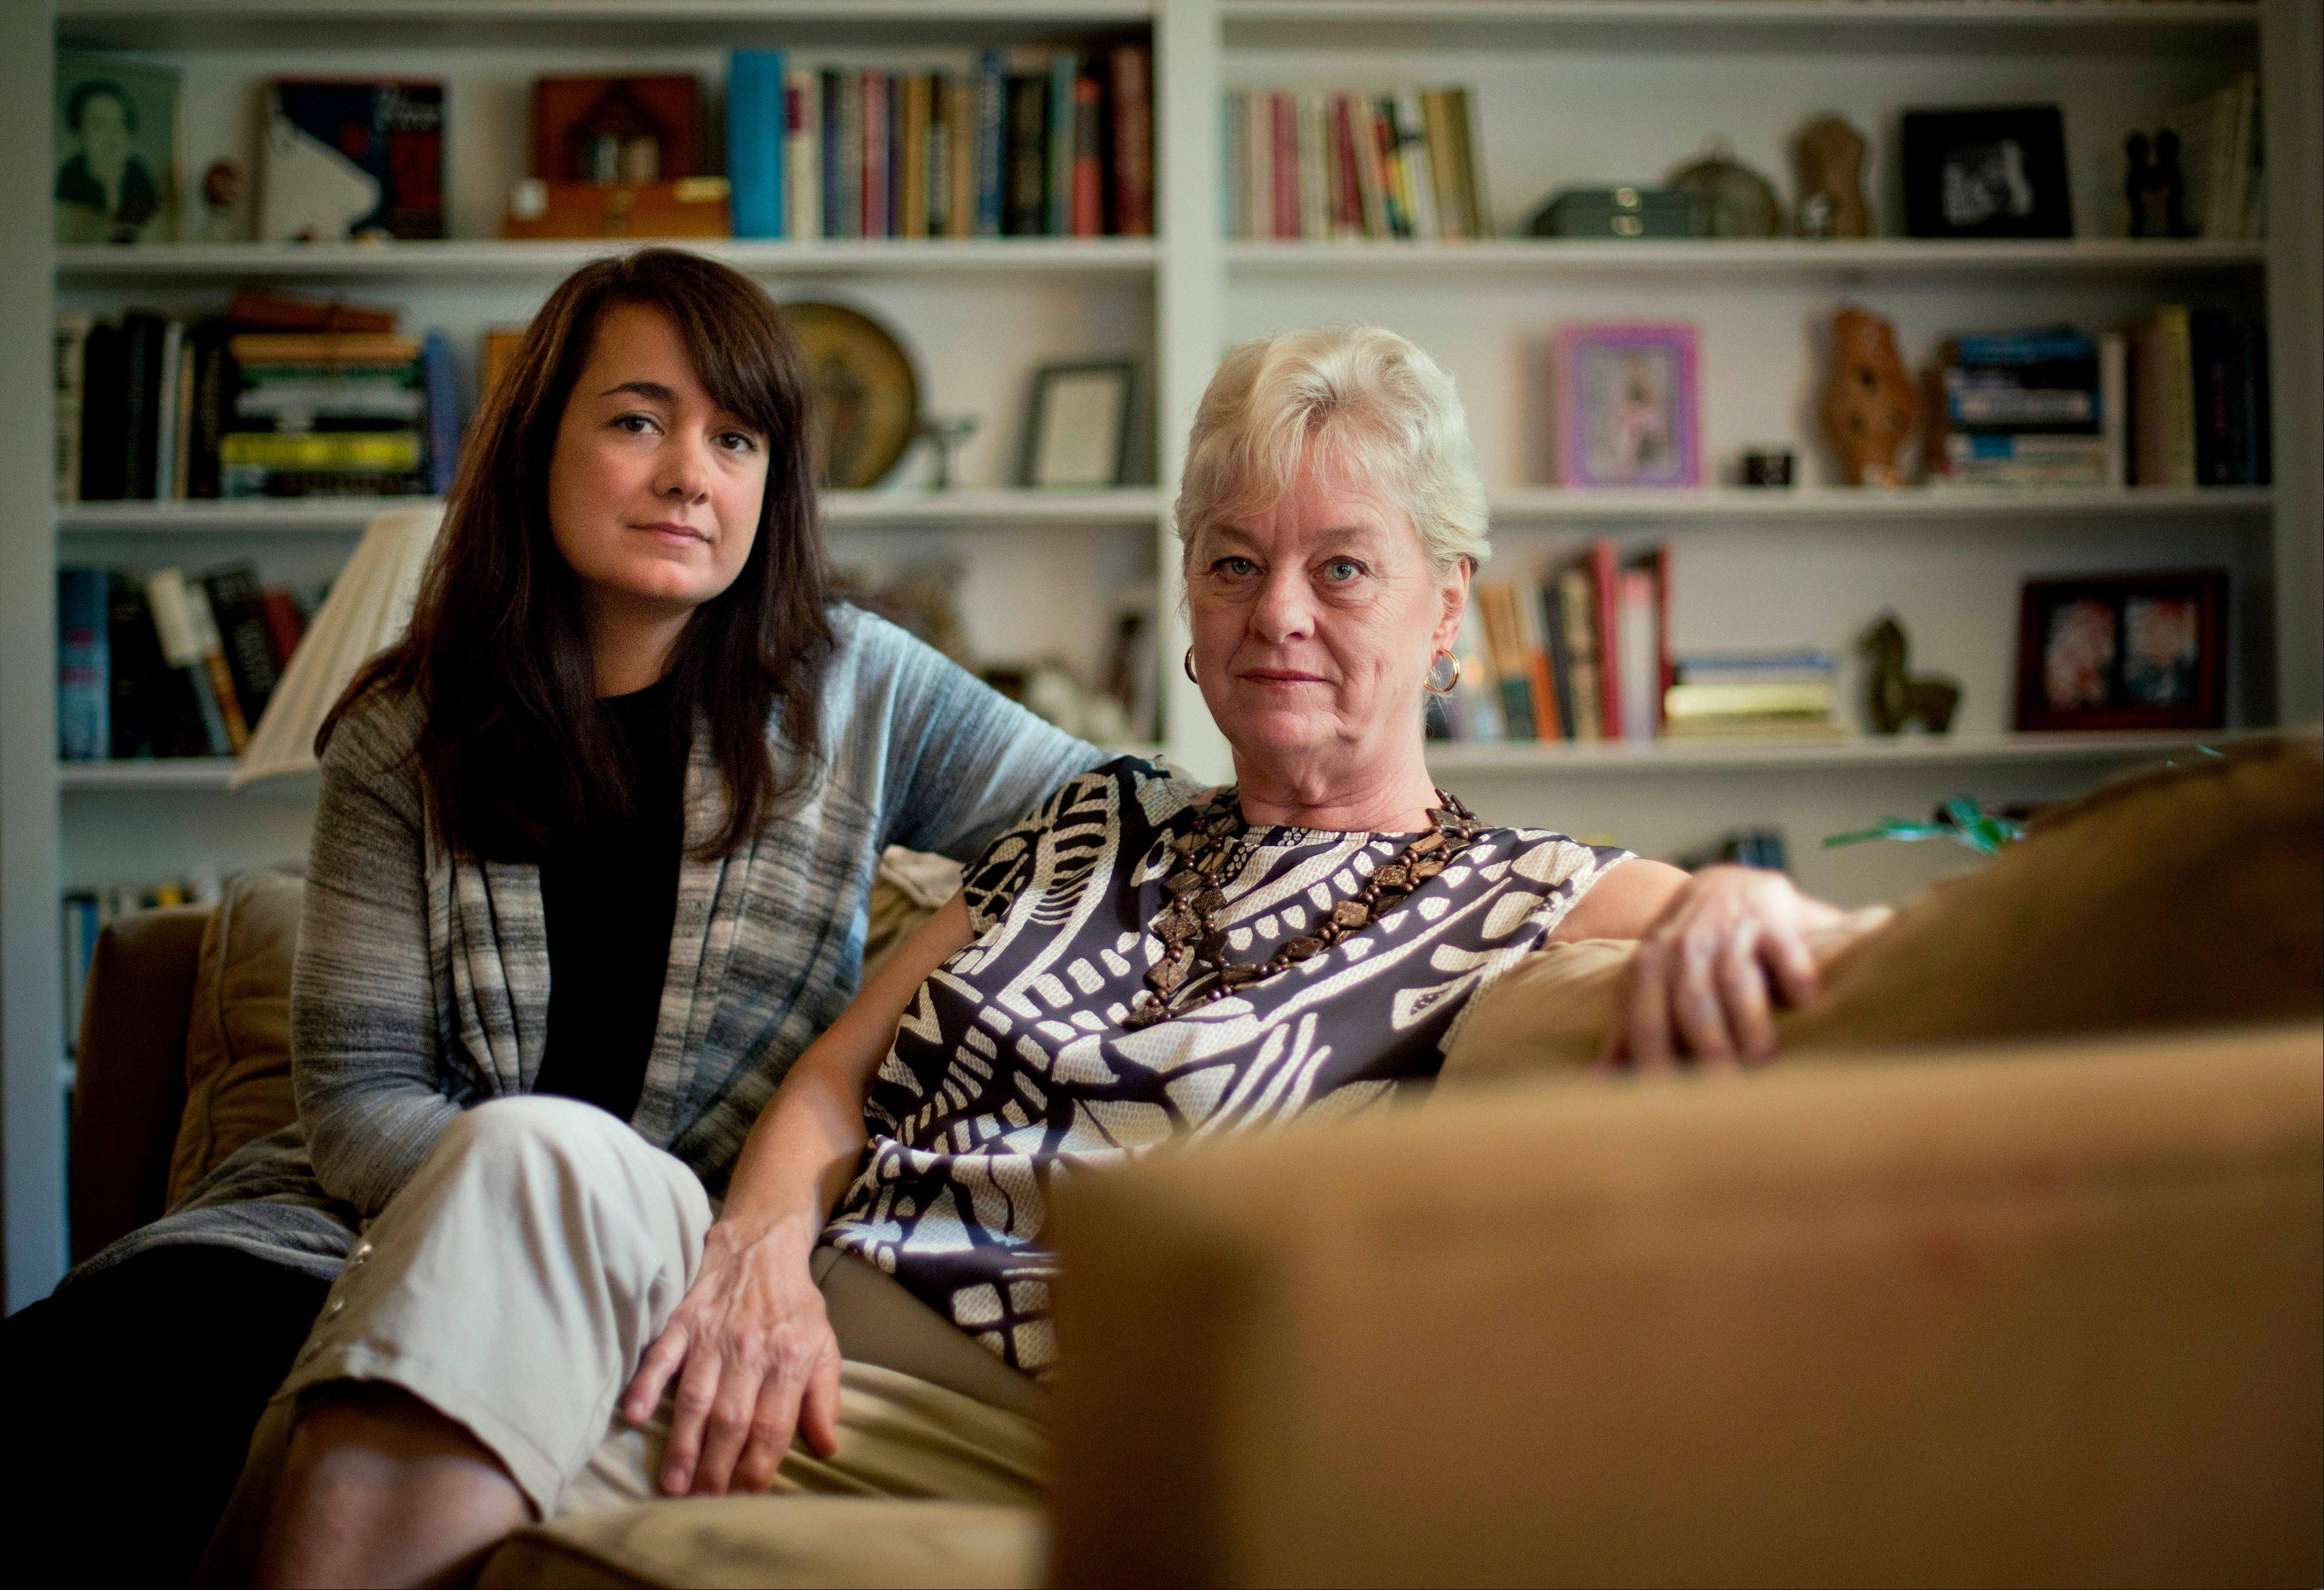 "Associated PressKeely Walker Muse, left, sits with her mother Eve Walker in the living room of her home in Atlanta, Saturday, Aug. 17. Mexican drug lord Rafael Caro Quintero was sentenced to 40 years in prison for the 1985 murders of her father, journalist John Clay Walker, his friend Alberto Radelat, and DEA agent Enrique ""Kiki"" Camarena, among other crimes. According to witnesses interviewed by DEA agents hunting for Camarena's killers, the cartel had mistaken Walker and Radelat for undercover agents. Caro Quintero walked free this month, 12 years early, after a local appeals court overturned his sentence for three of the murders. For the families of the six Americans slain before Camarena, the decision has awakened bitter memories of the brutality that ushered in the modern era of Mexican drug trafficking."